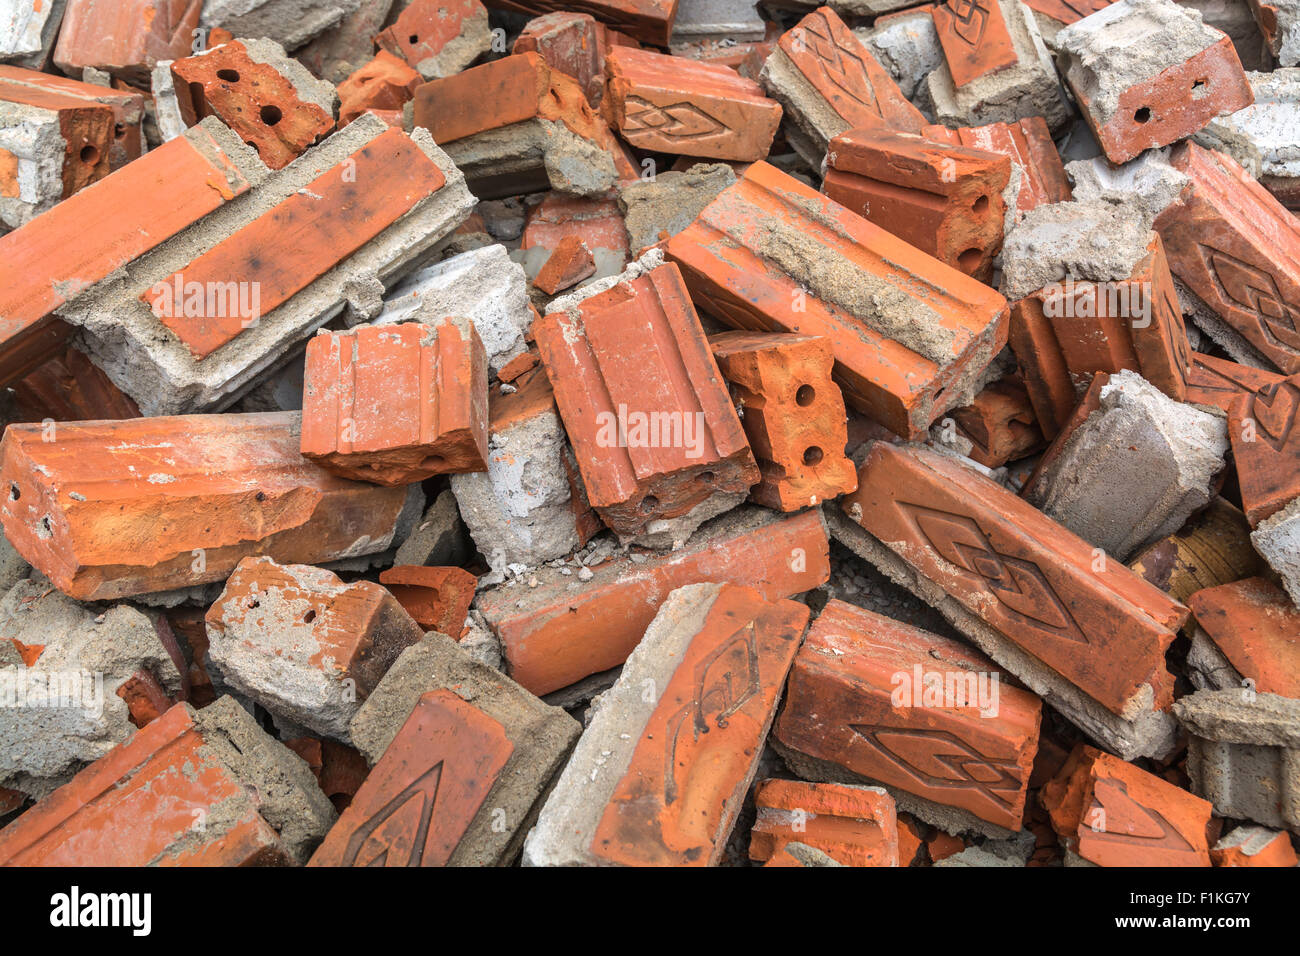 ruin after demolishing construct - Stock Image